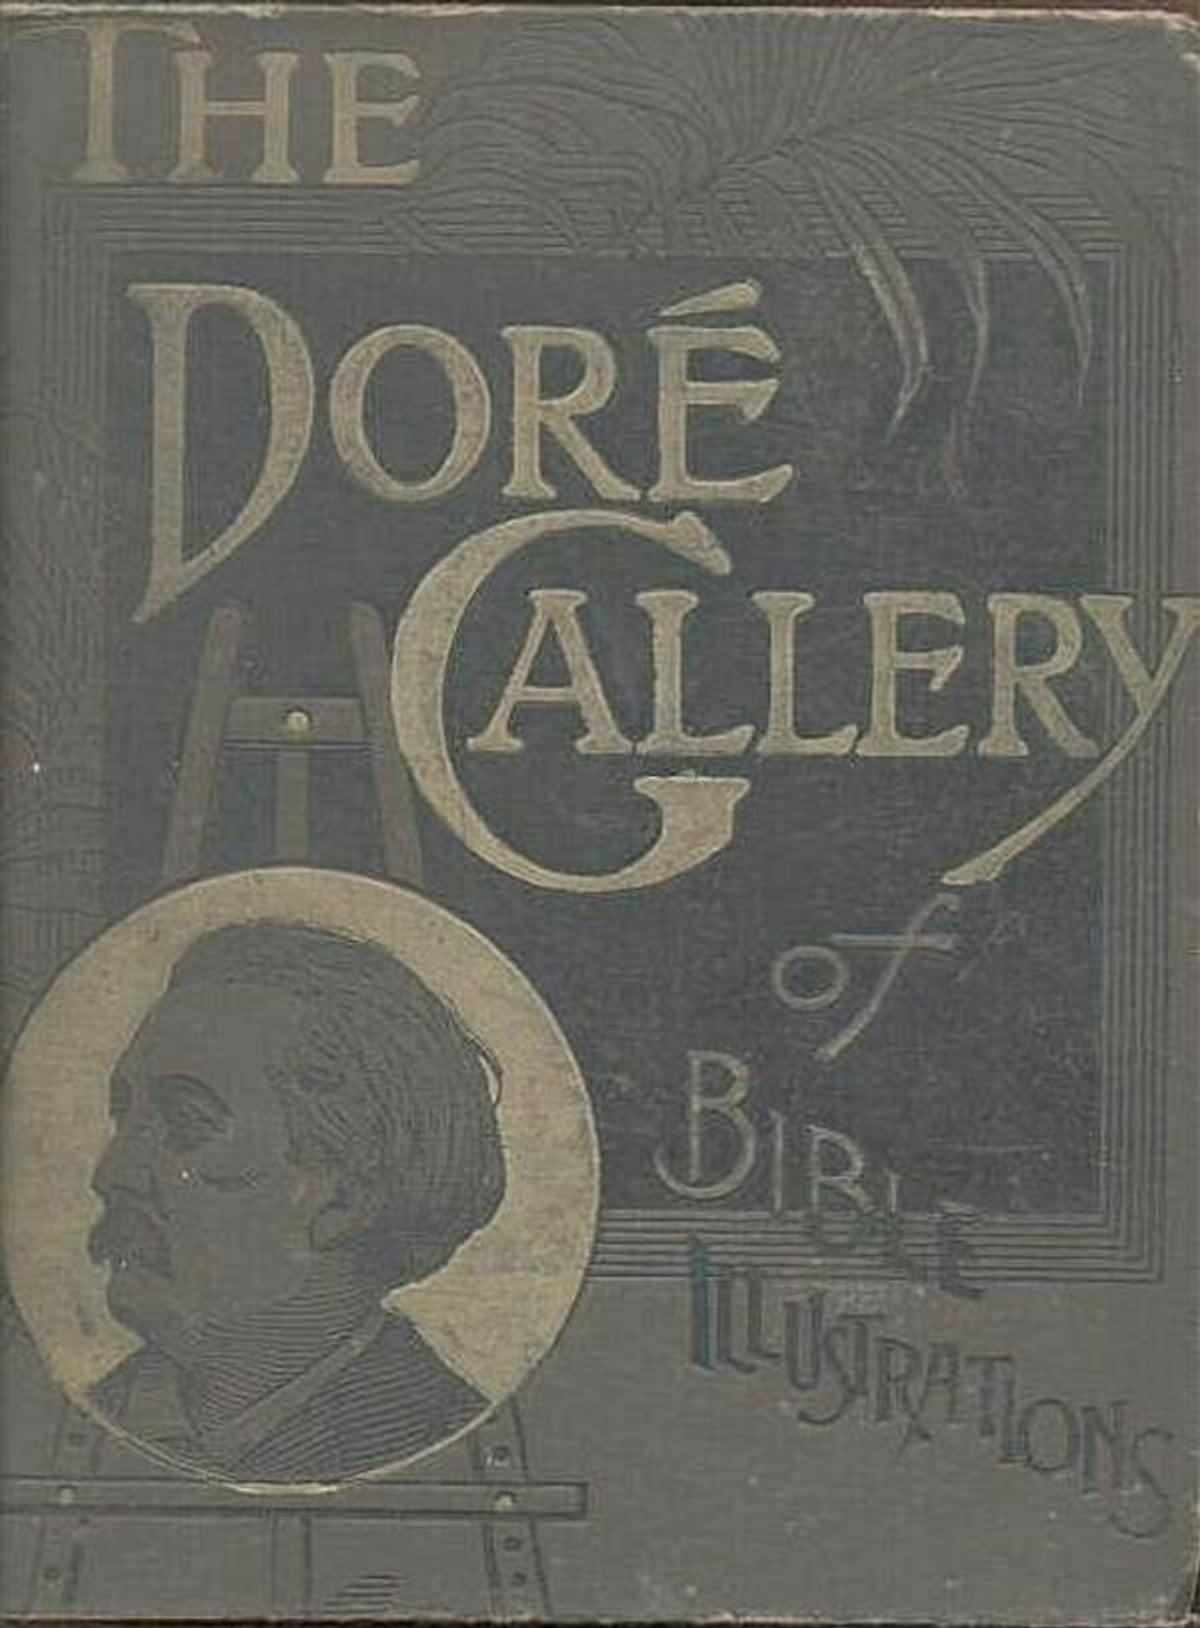 The dore gallery of bible illustrations ebook by Gustave Doré - Rakuten Kobo